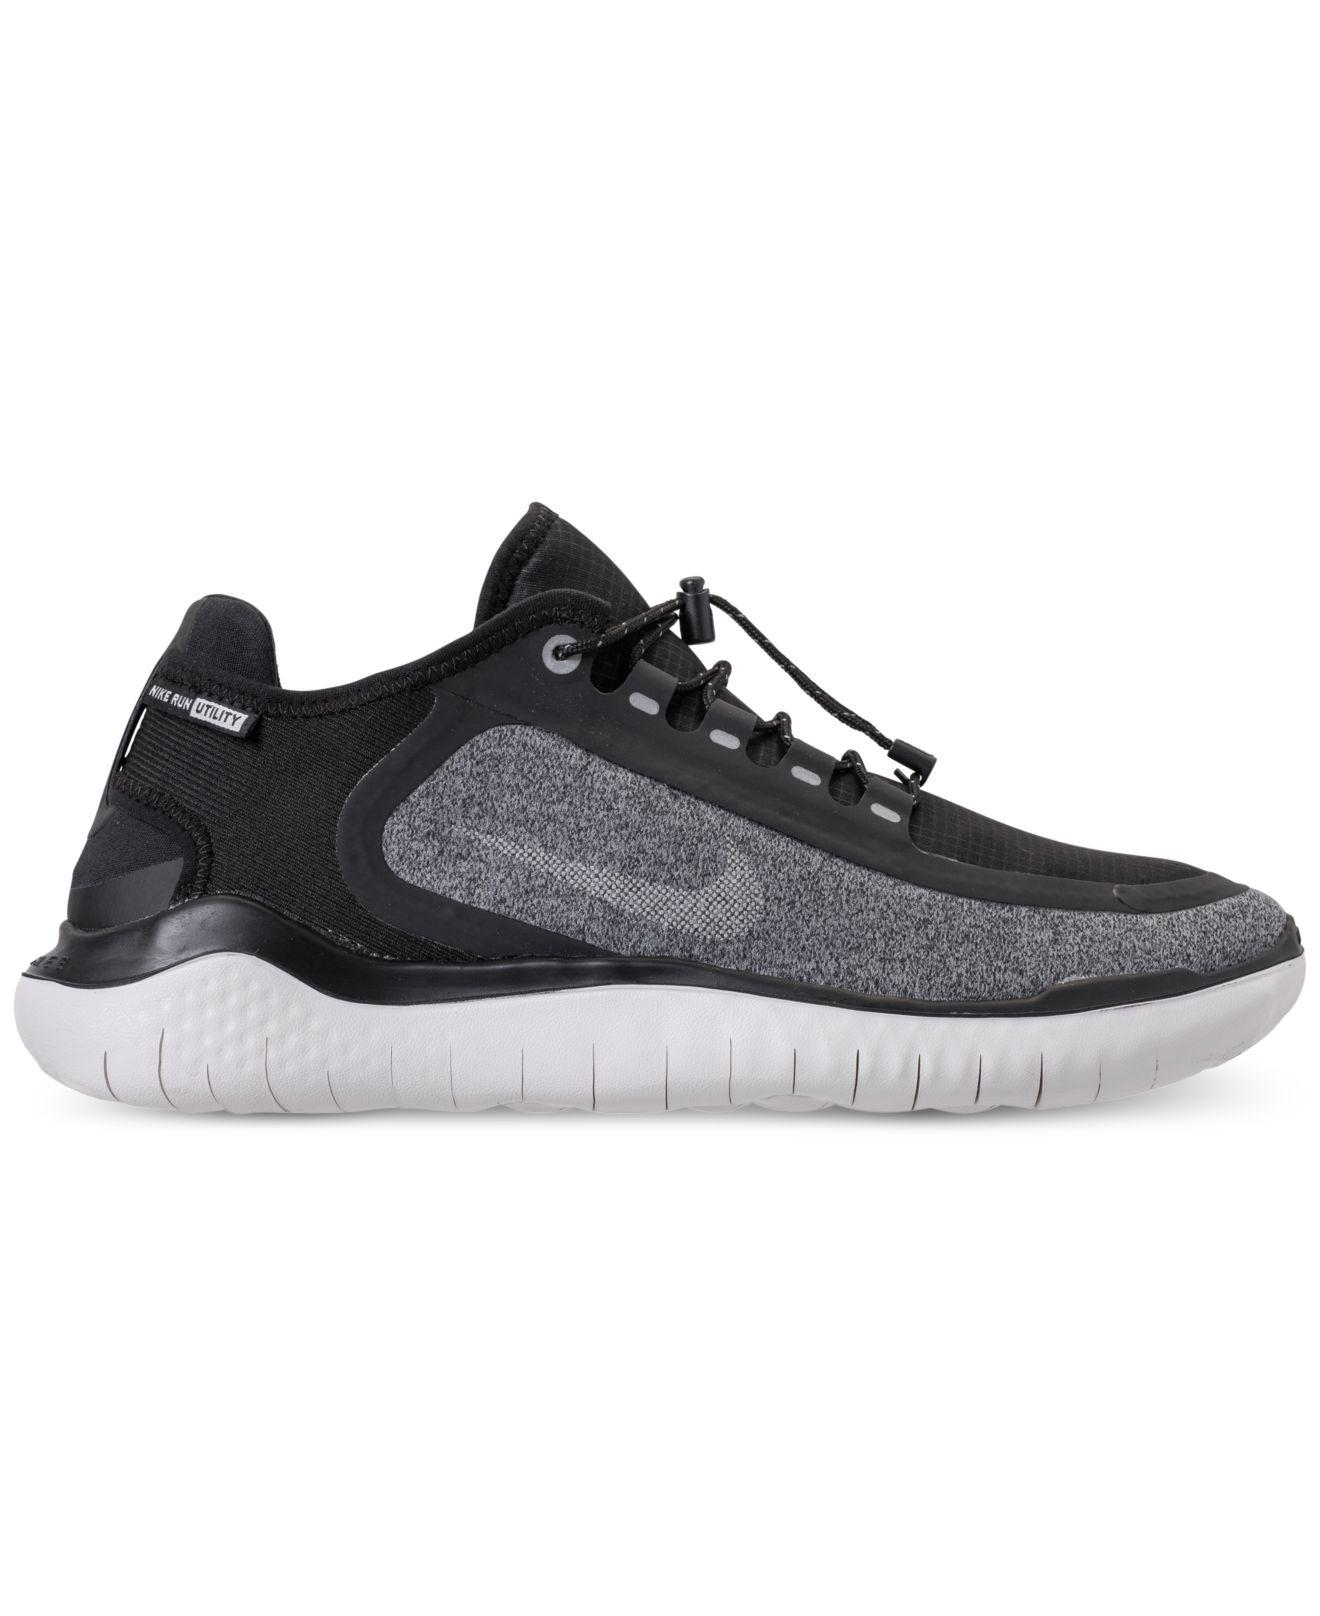 Lyst - Nike Free Rn 2018 Shield Running Sneakers From Finish Line in Black  for Men 0941a3127